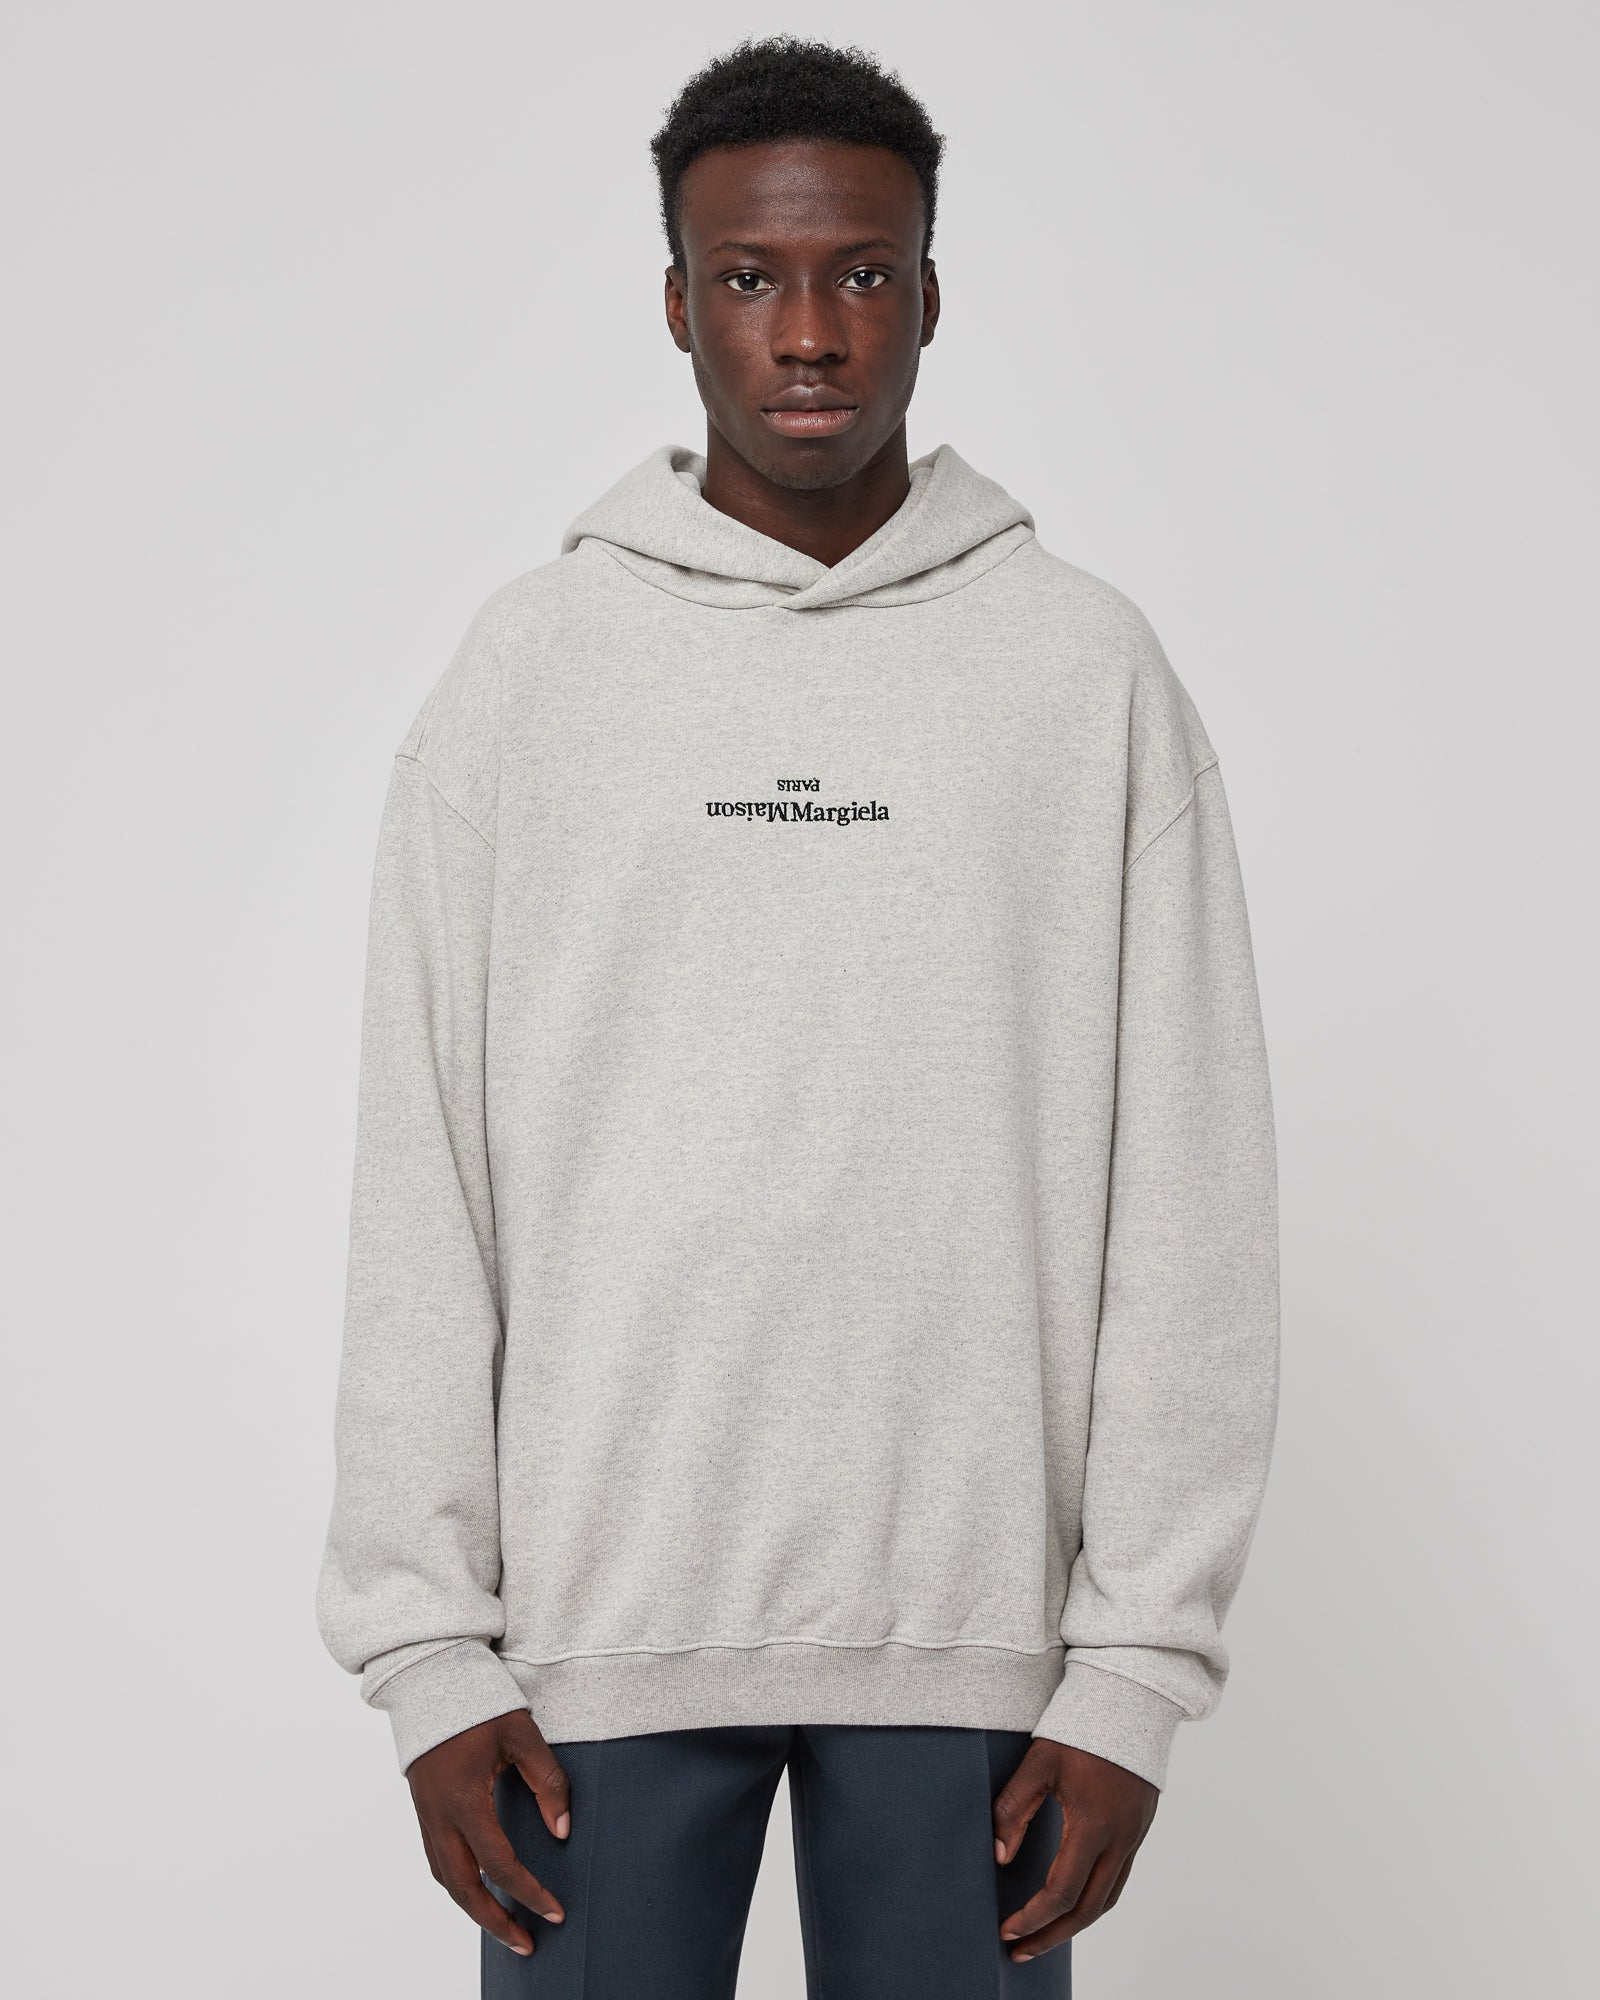 Logo Sweatshirt in Gray